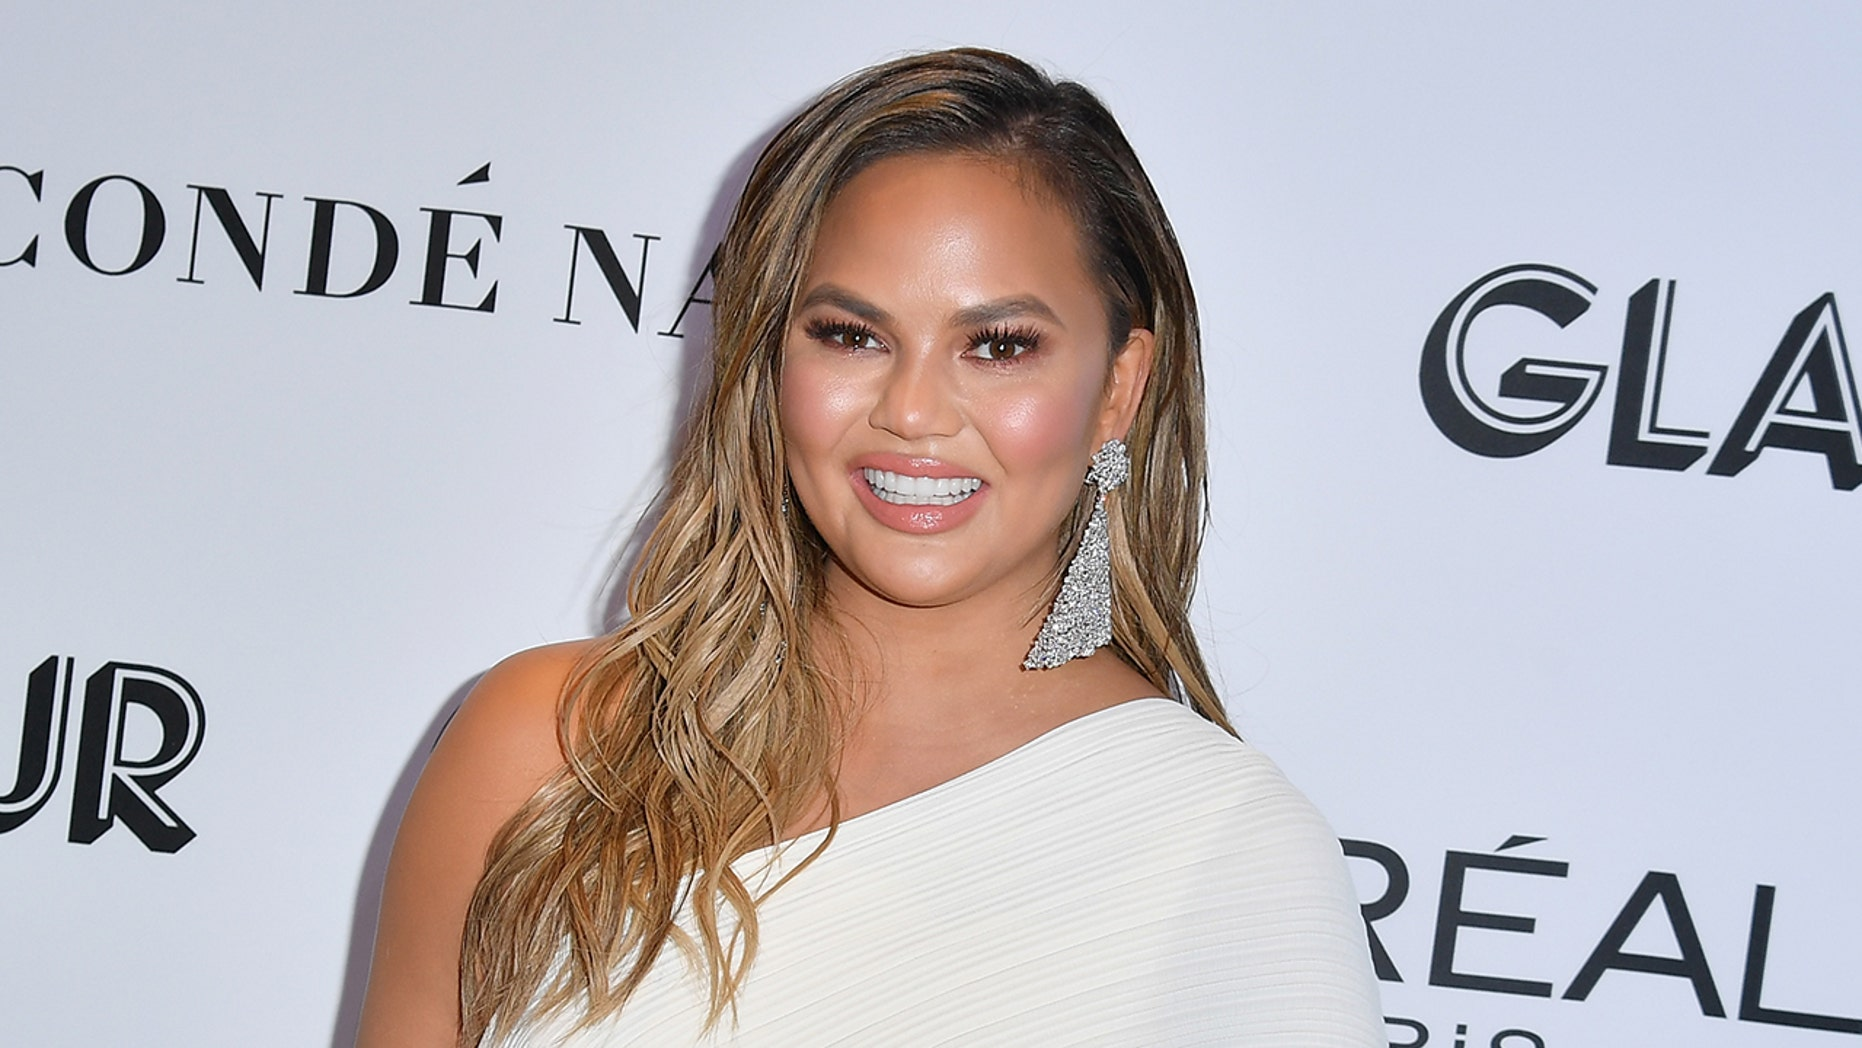 1b34df3b2081c Chrissy Teigen tweeted Saturday that she is coming to terms with her post- pregnancy weight